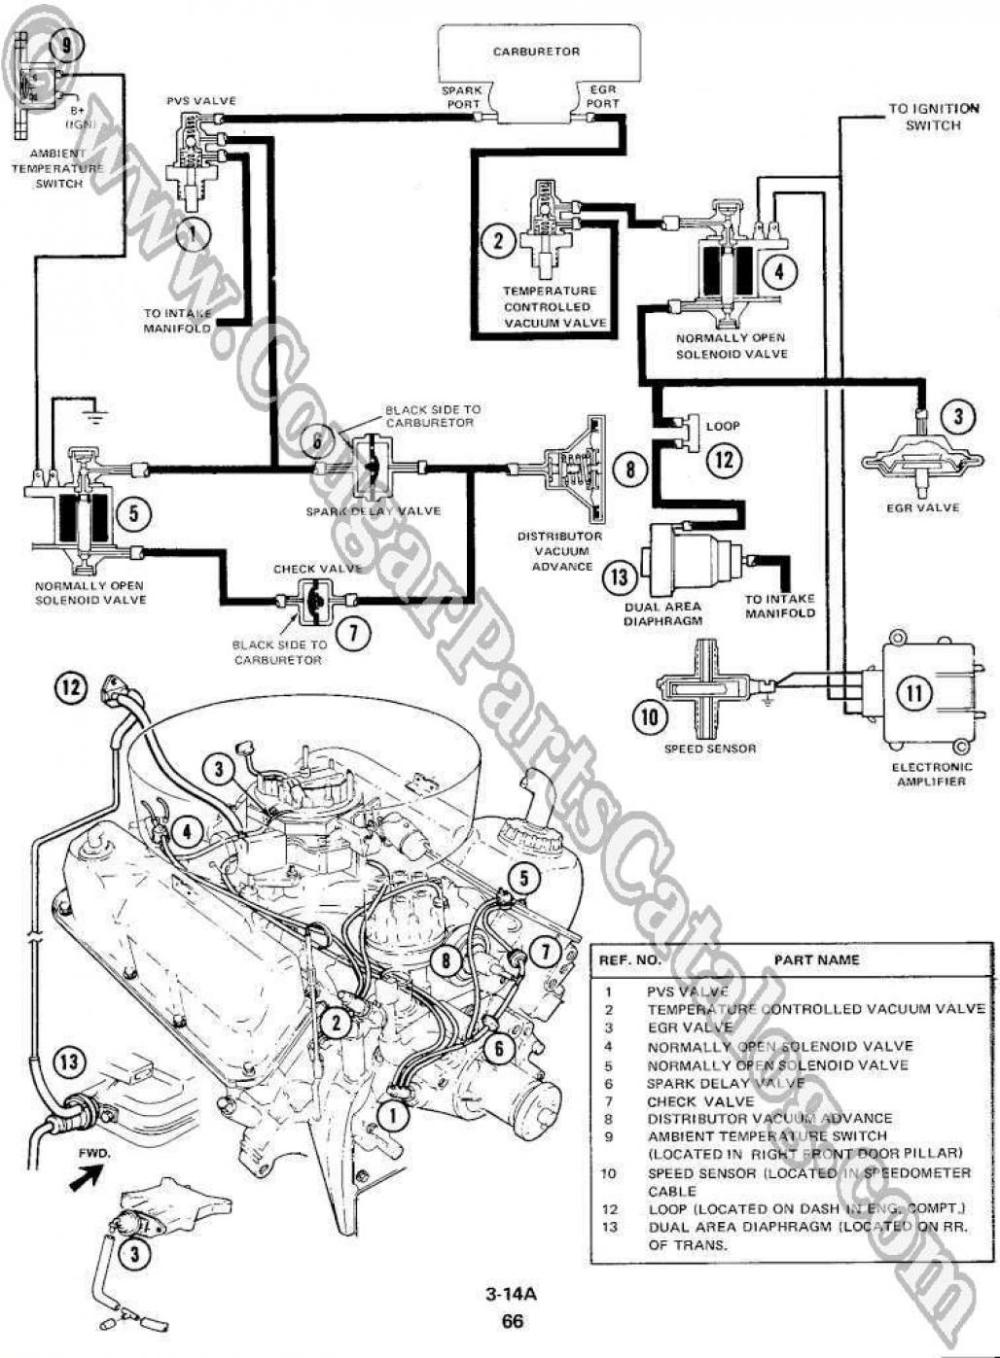 medium resolution of shop manual engine emission system diagnosis repro 1973 1973 ford torino 1973 mercury cougar wiring